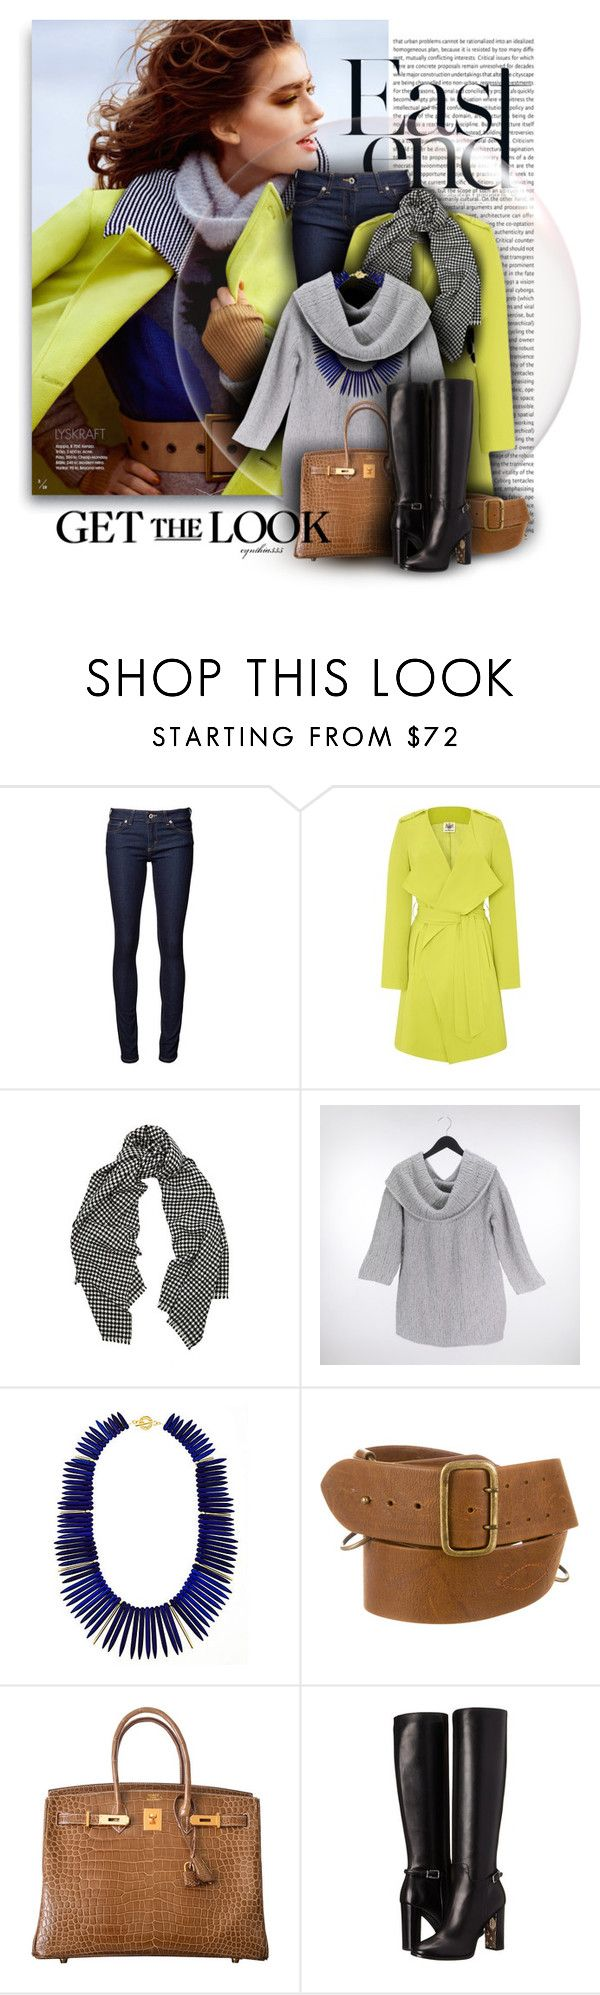 """Get the Look"" by cynthia335 ❤ liked on Polyvore featuring Olsson, Naked & Famous, Mercy Delta, Donna Karan, Janna Conner, Alexander McQueen, Hermès and Burberry"